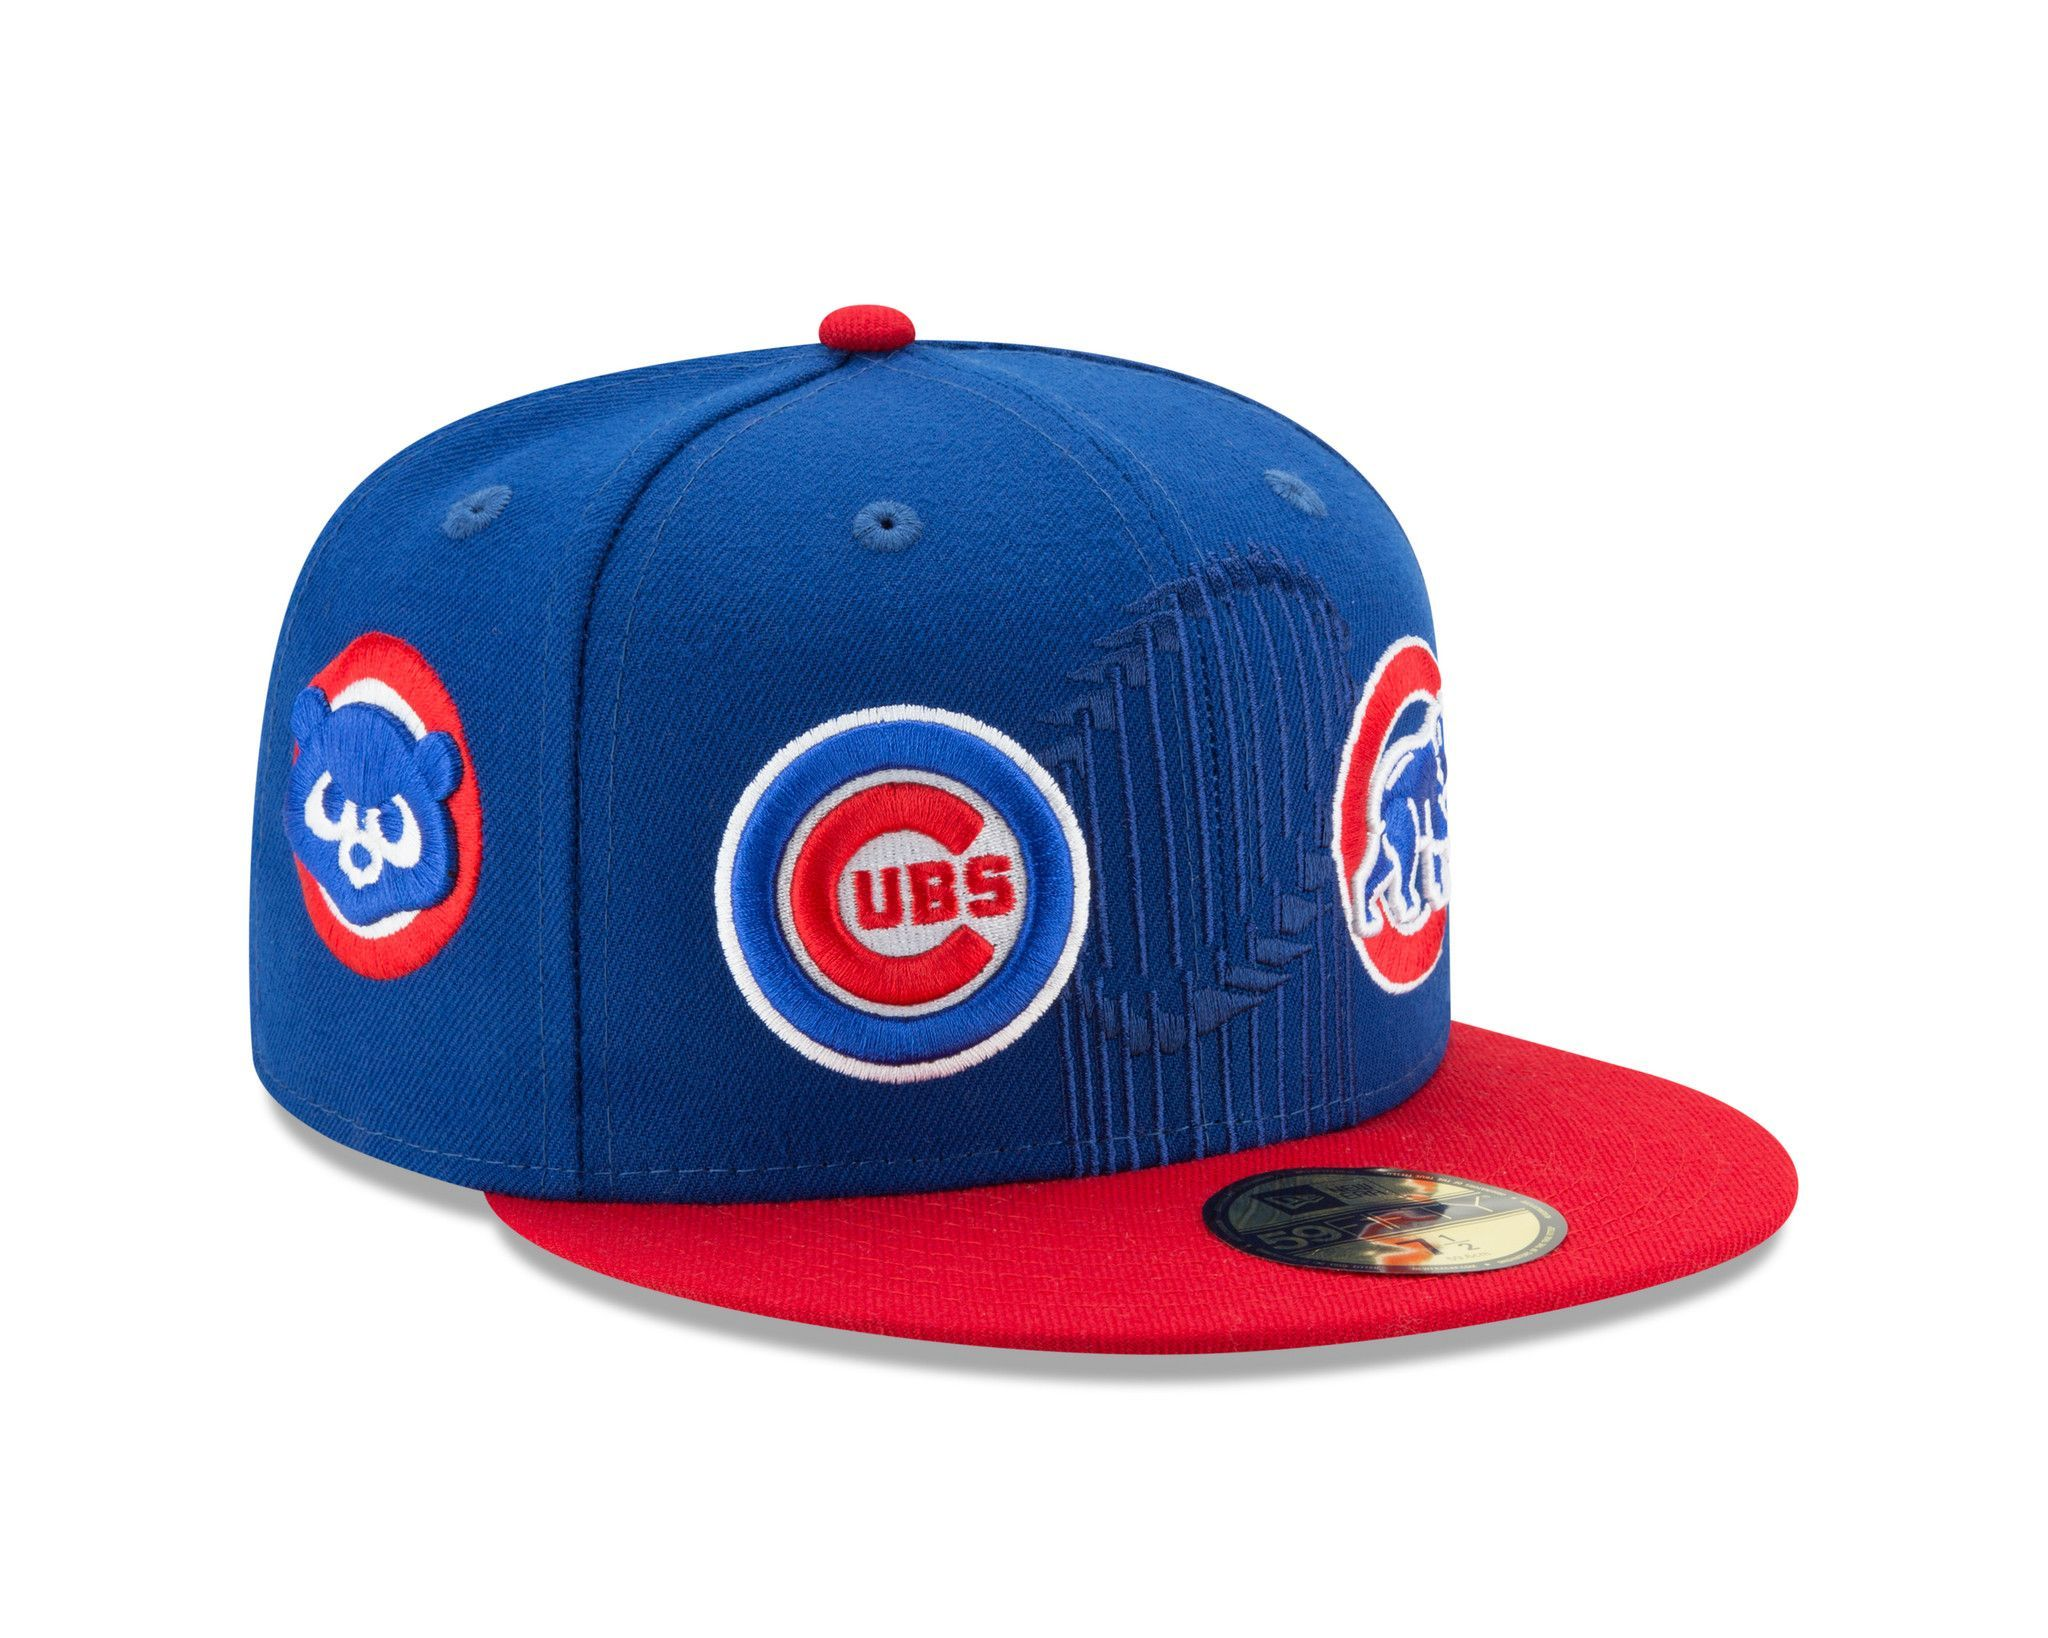 Chicago Cubs 3 Time World Series Champions Logos 59fifty Fitted Hat By New Era Fitted Hats New Era Champion Logo